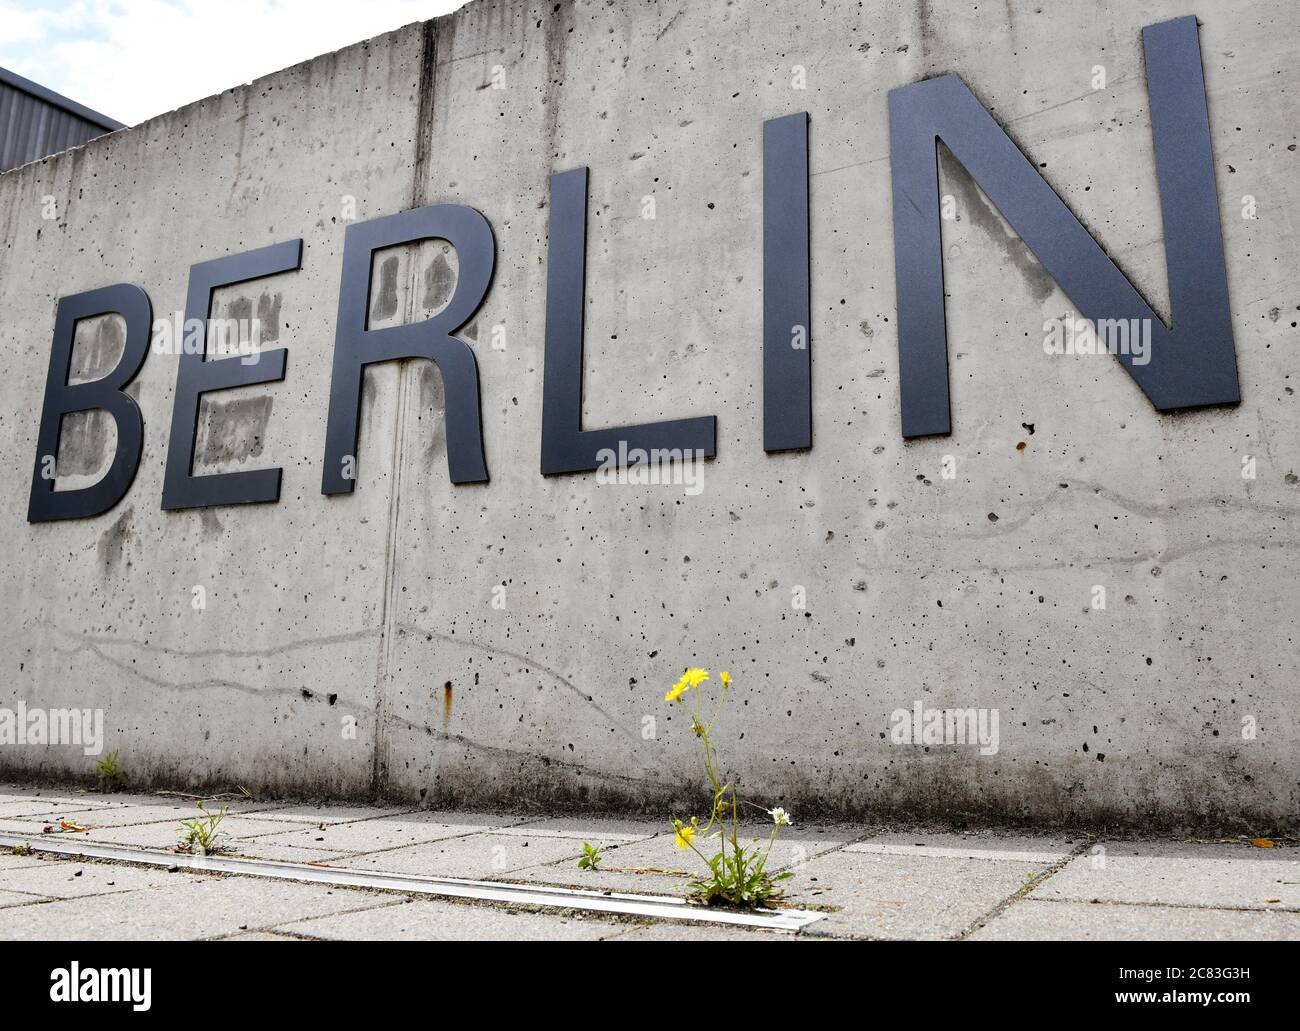 """Berlin, Germany. 03rd July, 2020. The word """"Berlin"""" is attached to a concrete wall in front of a university building of Freie Universität in Dahlem. In front of it, a yellow flower grows from the pavement. It is part of the lettering """"Freie Universität Berlin"""". Credit: Jens Kalaene/dpa-Zentralbild/ZB/dpa/Alamy Live News Stock Photo"""